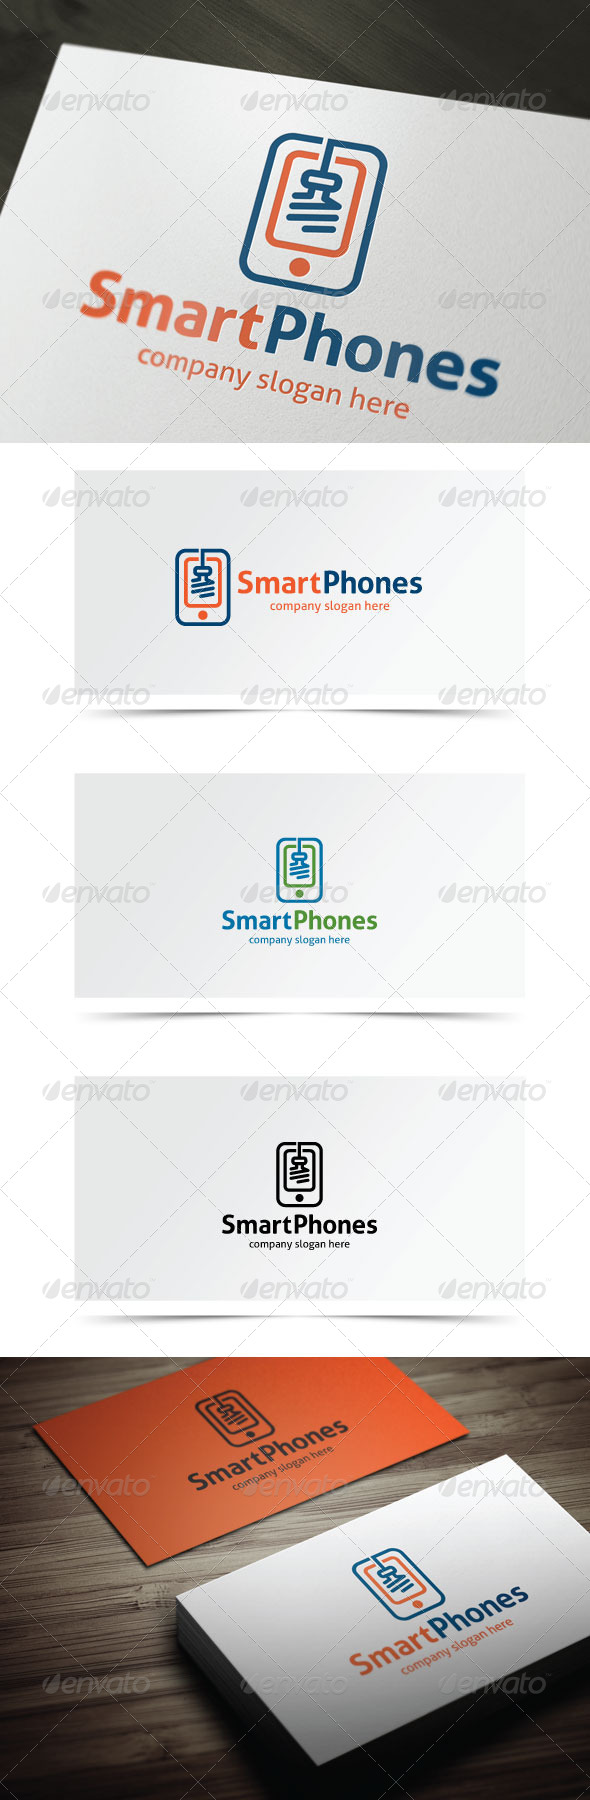 GraphicRiver Smart Phones 7362218